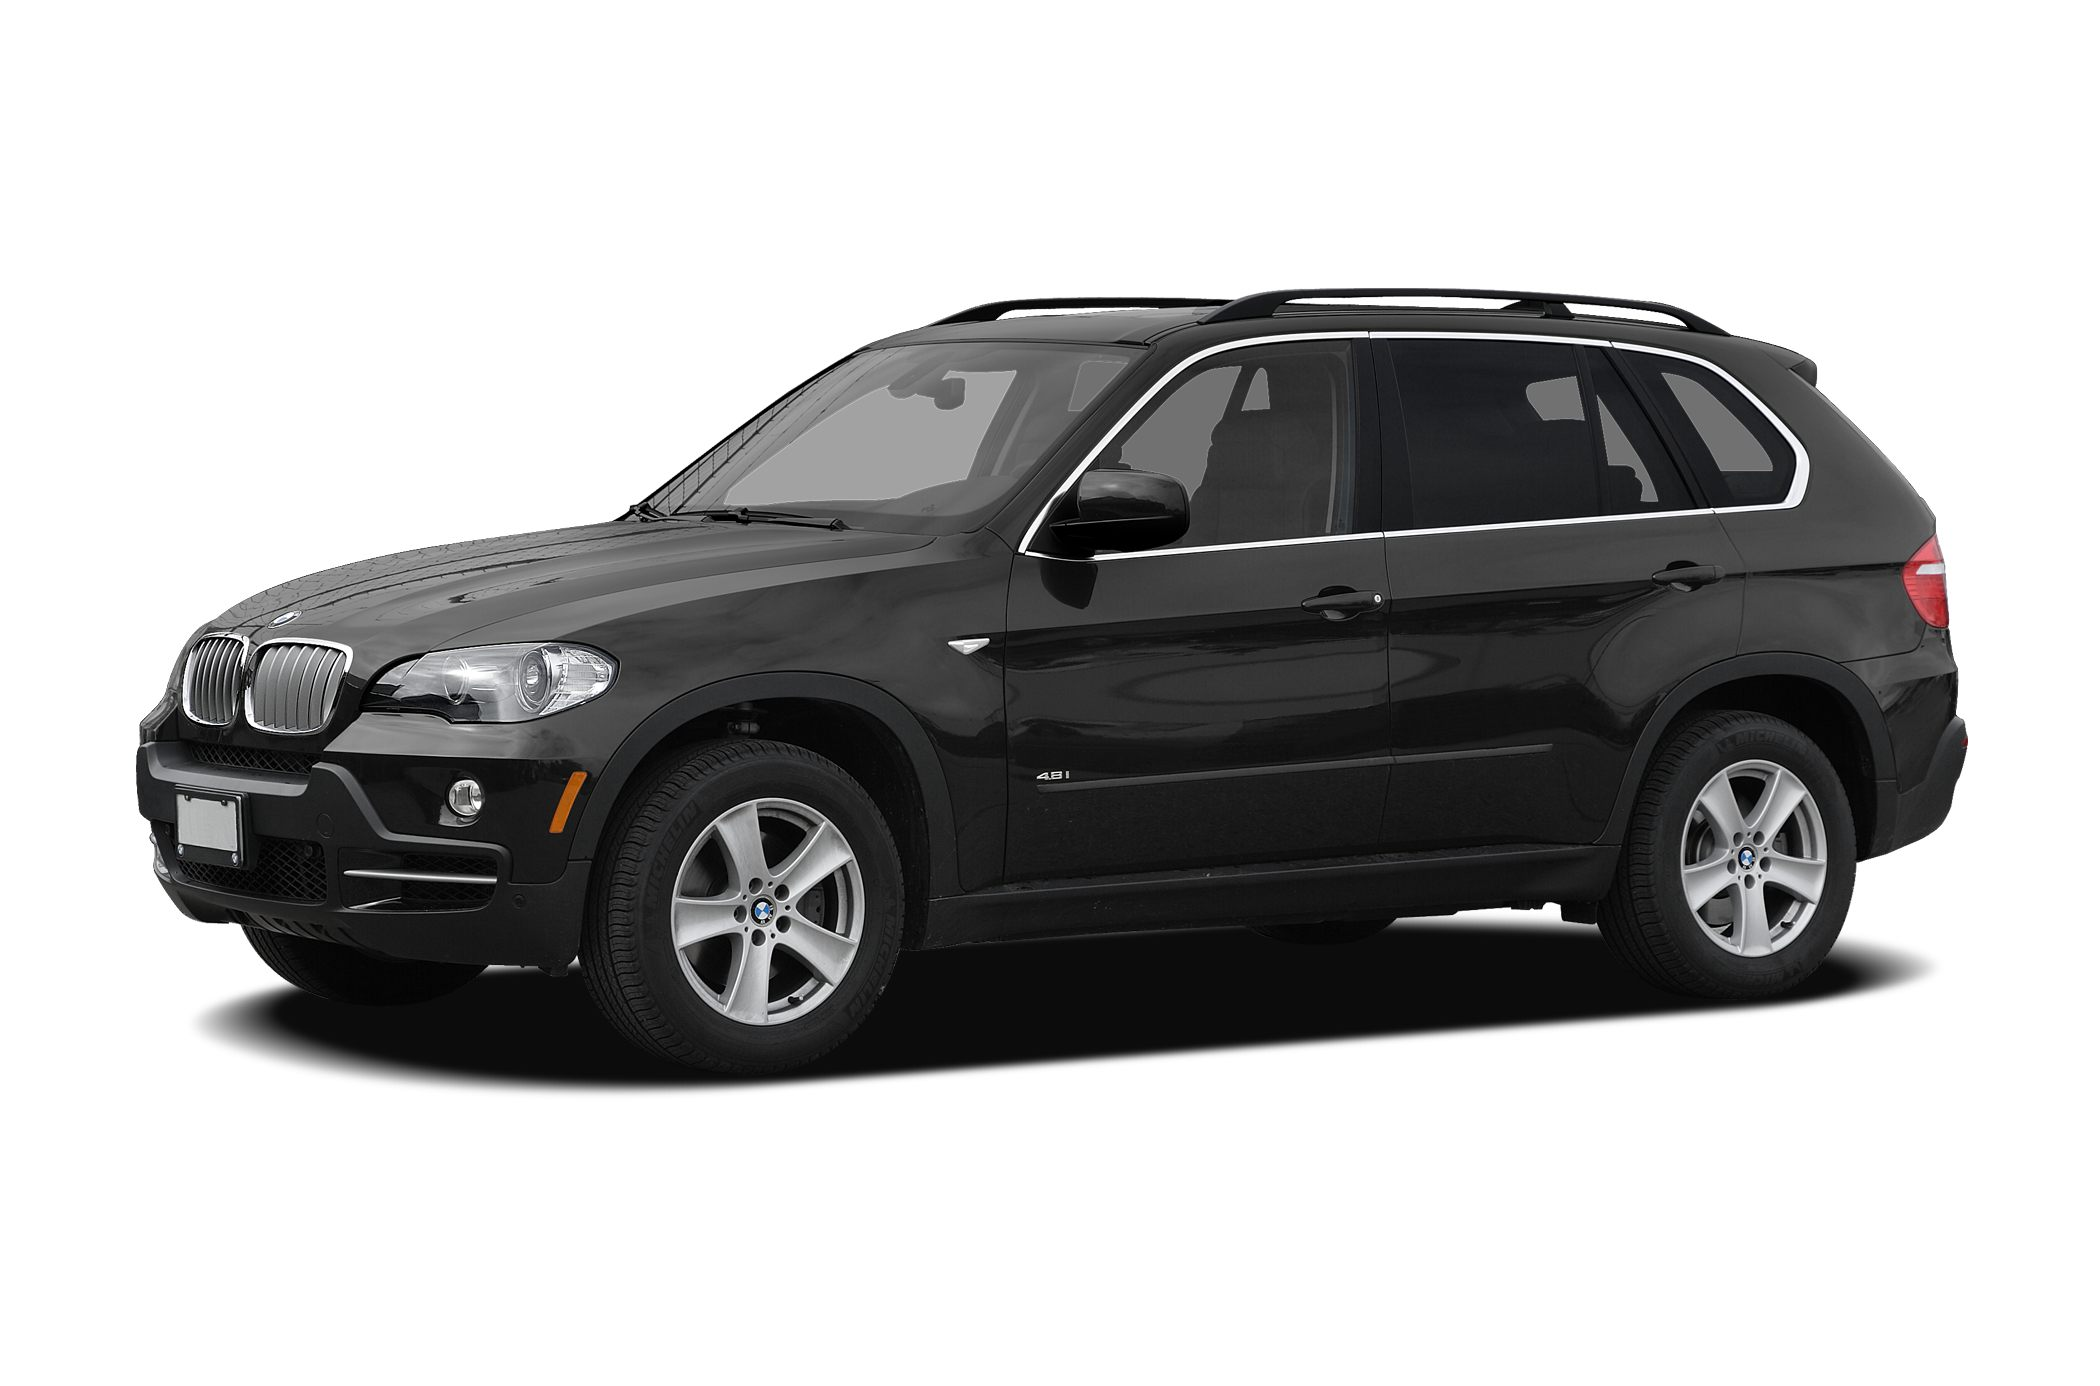 2008 BMW X5 3.0si SUV for sale in Glen Burnie for $20,750 with 89,316 miles